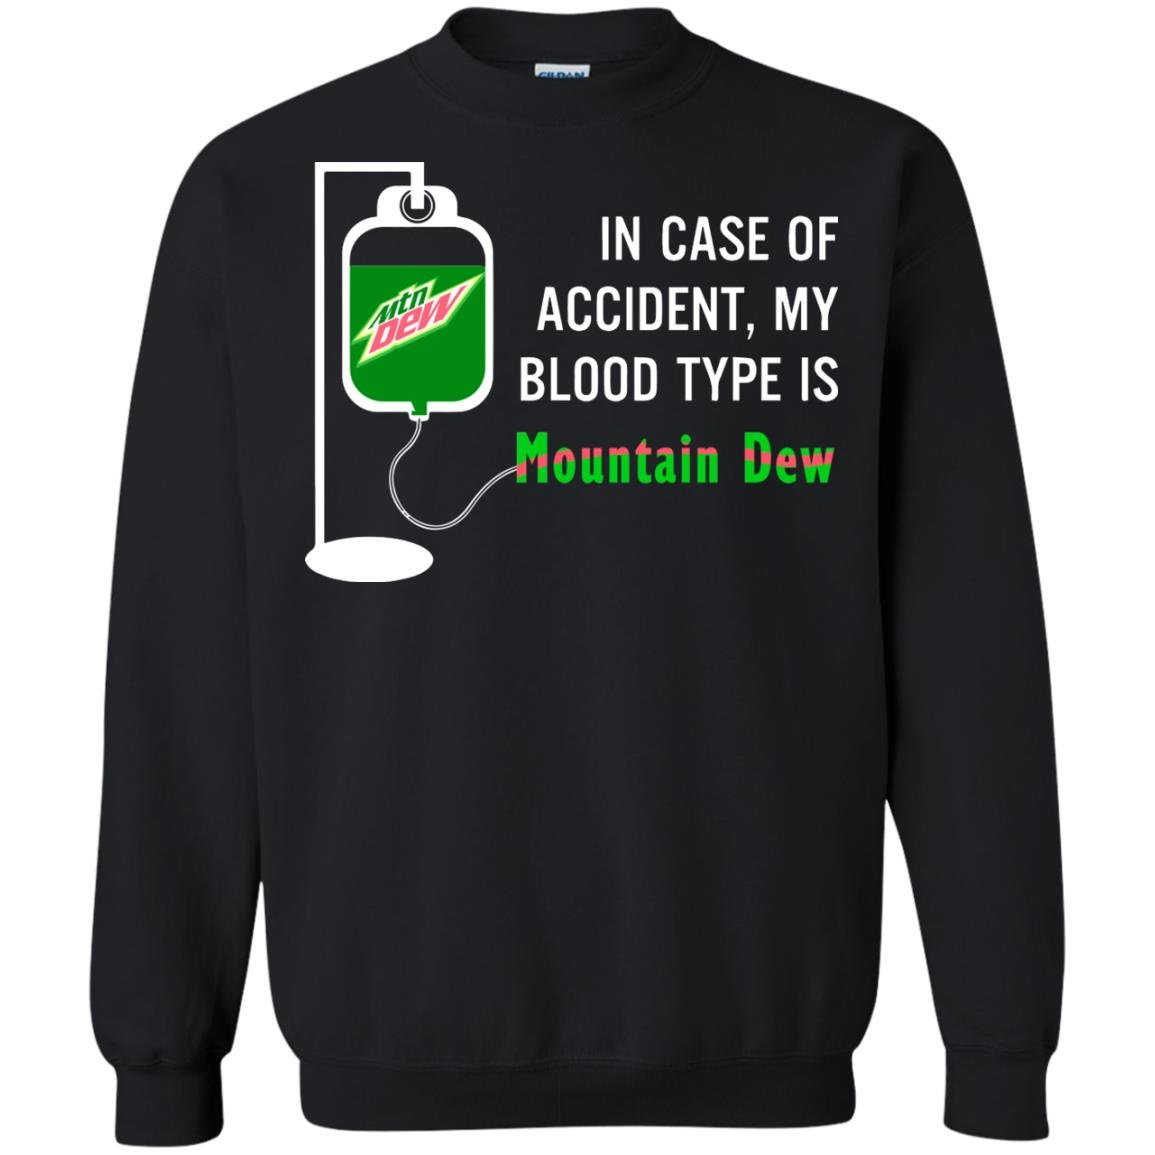 image 498 - In Case Of Accident My Blood Type Is Mountain Dew Shirt